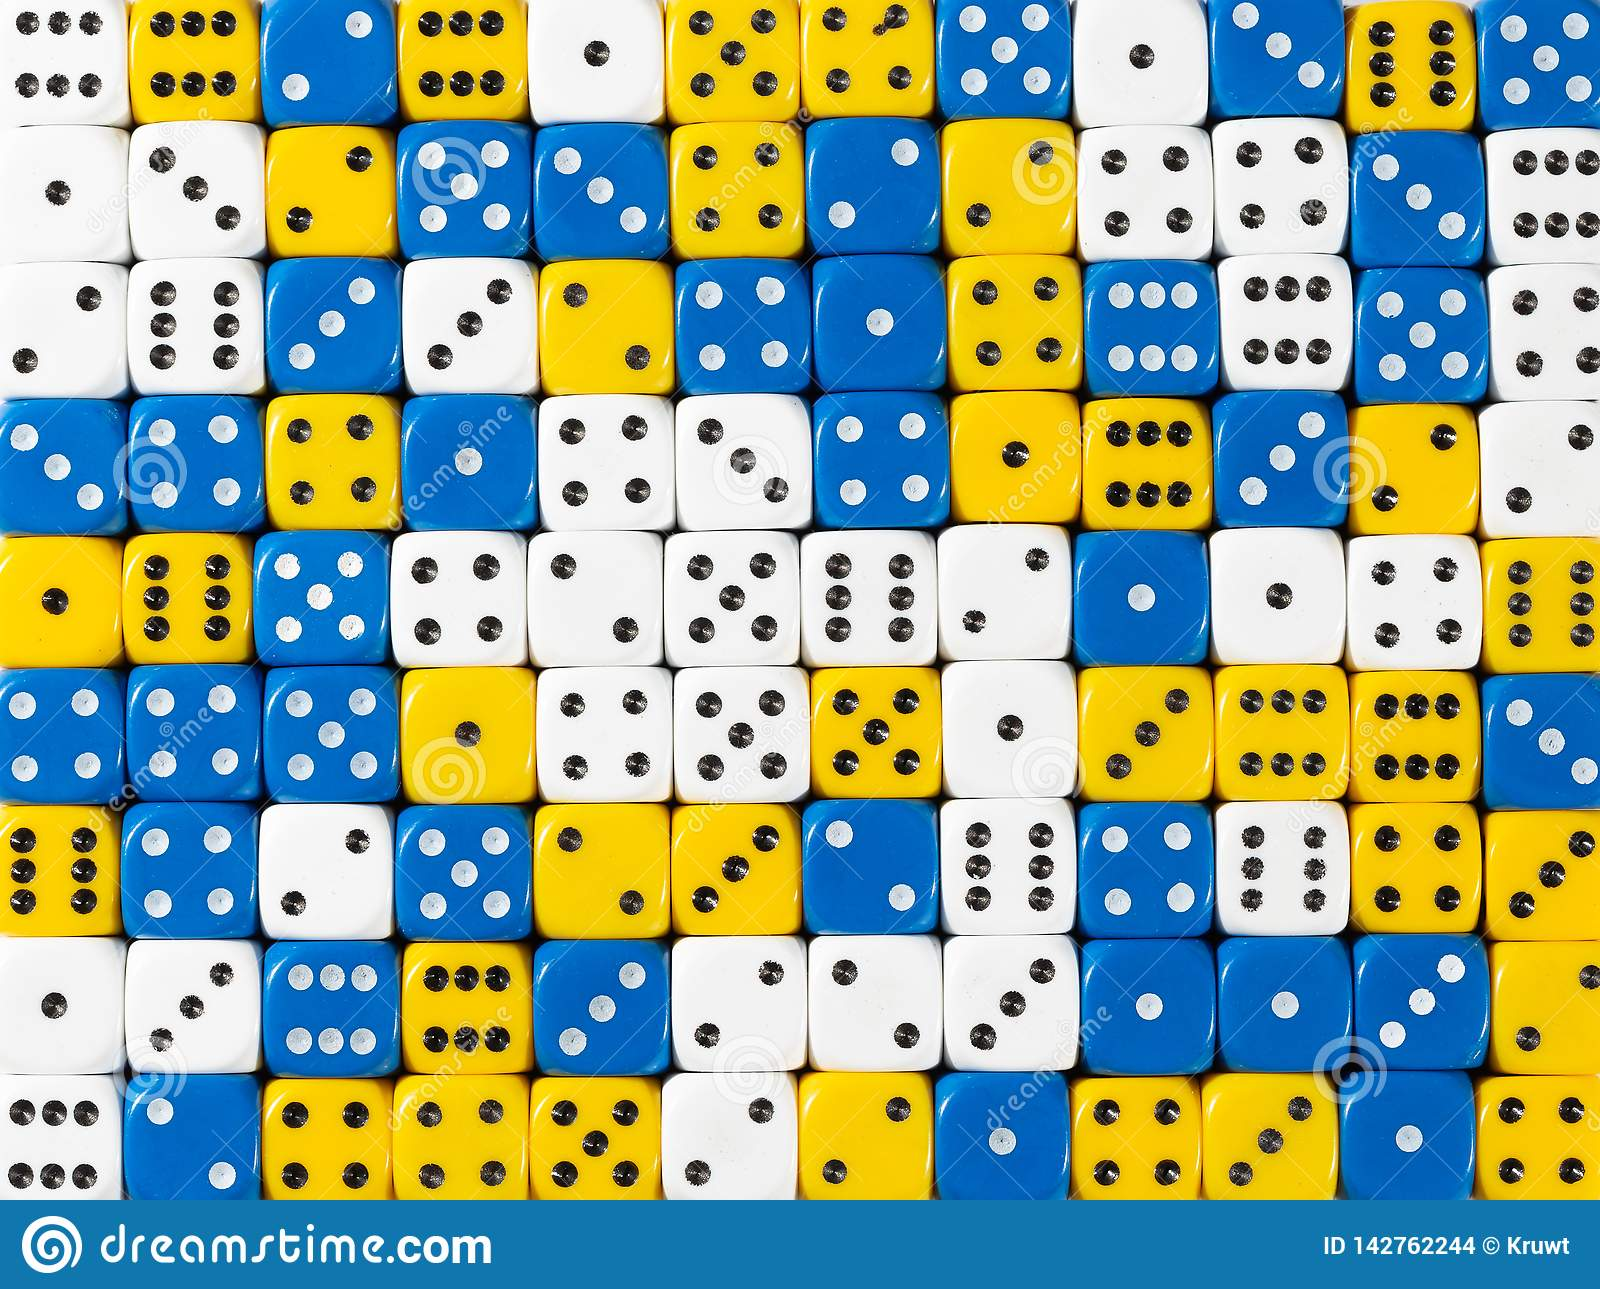 Background pattern of random ordered white, blue and yellow dices